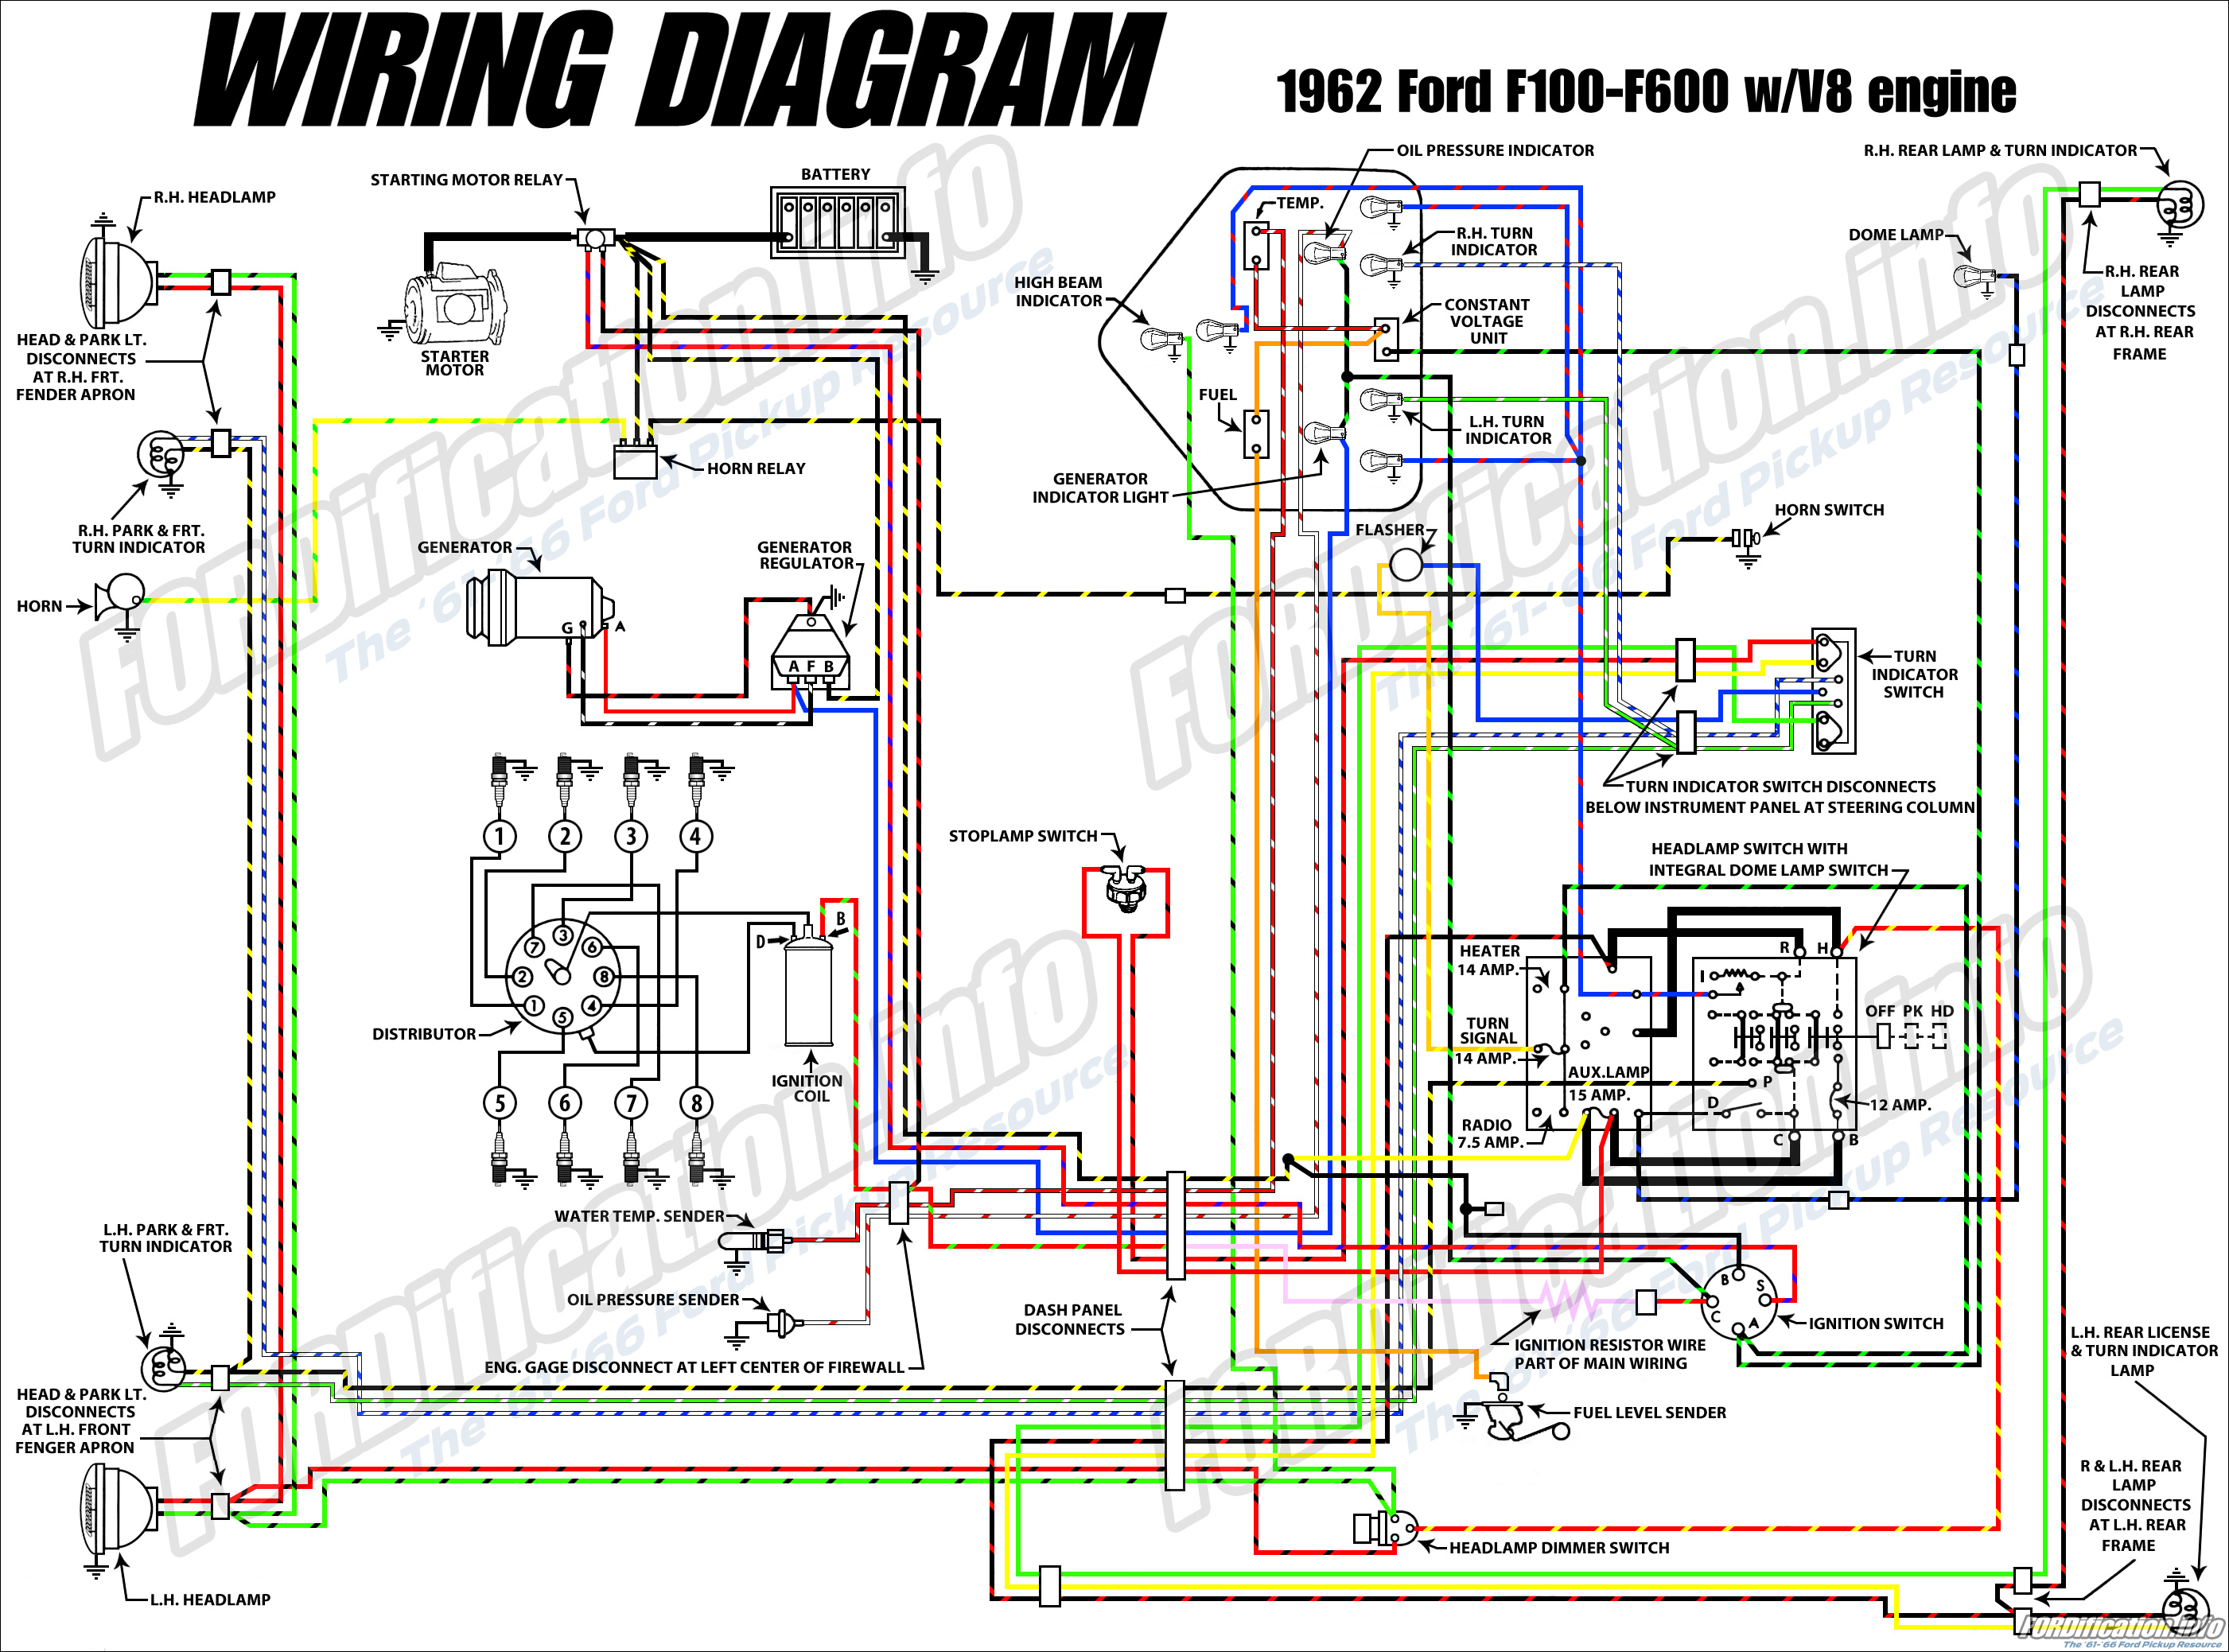 1962fordtruck_masterwiring 1962 ford truck wiring diagrams fordification info the '61 '66 fordification wiring diagram at virtualis.co